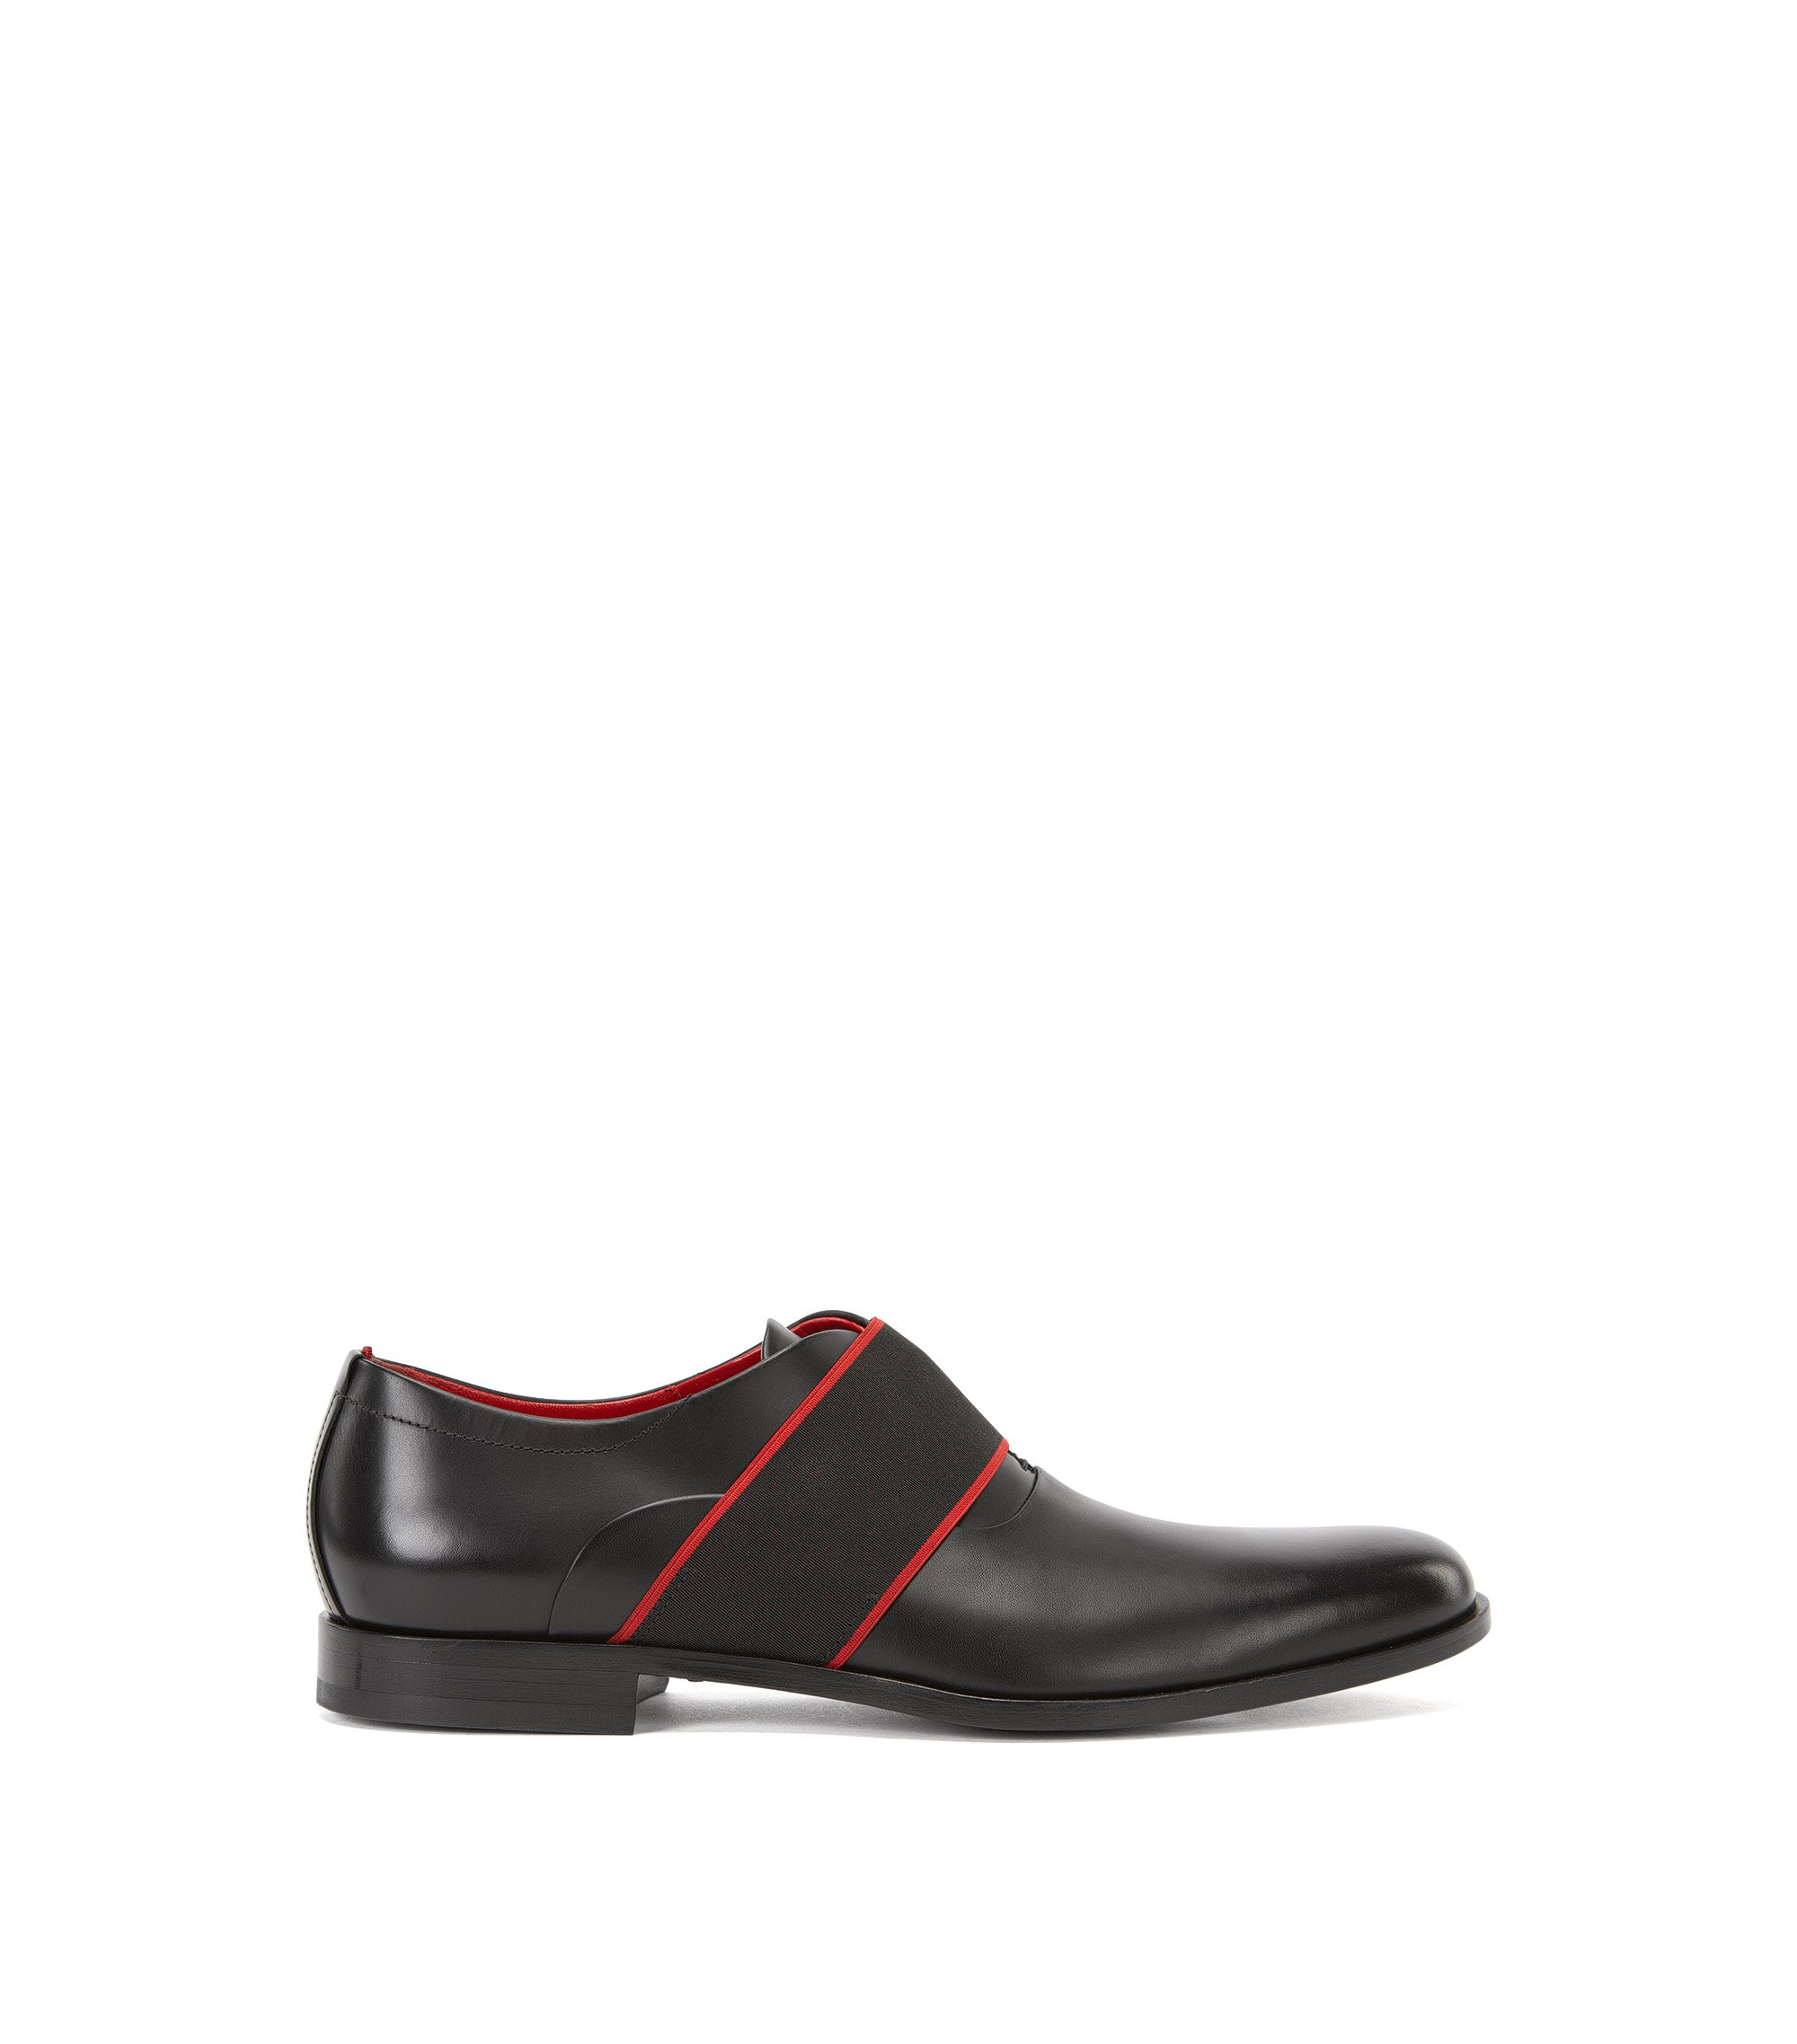 Leather Slip-On Dress Shoe | Sigma Slon Tp, Black